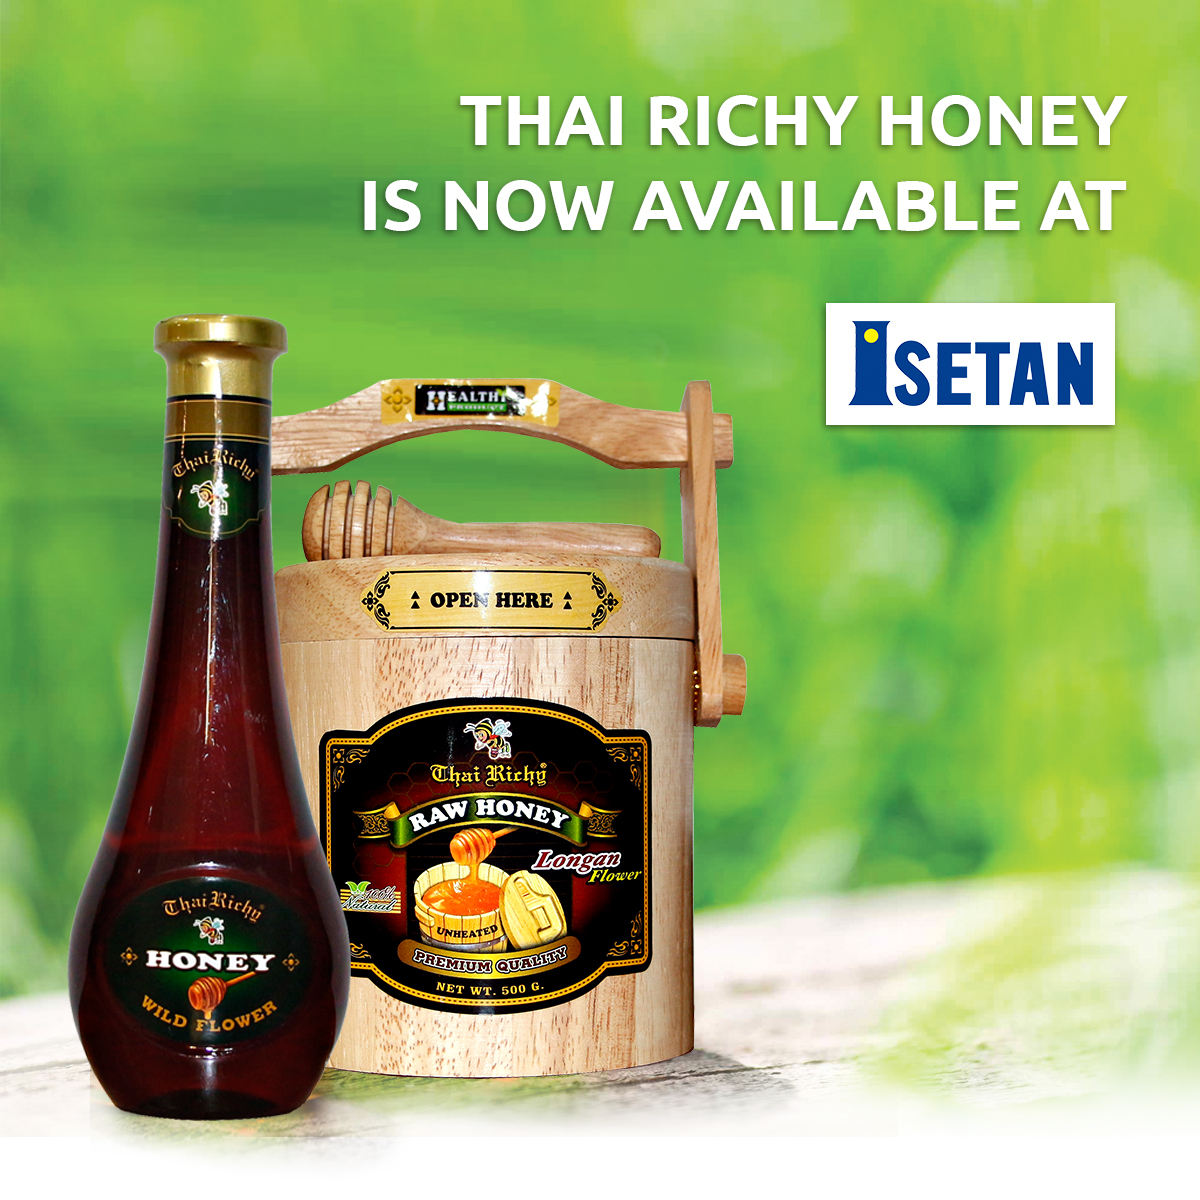 Thai Richy Honey Available at Isetan